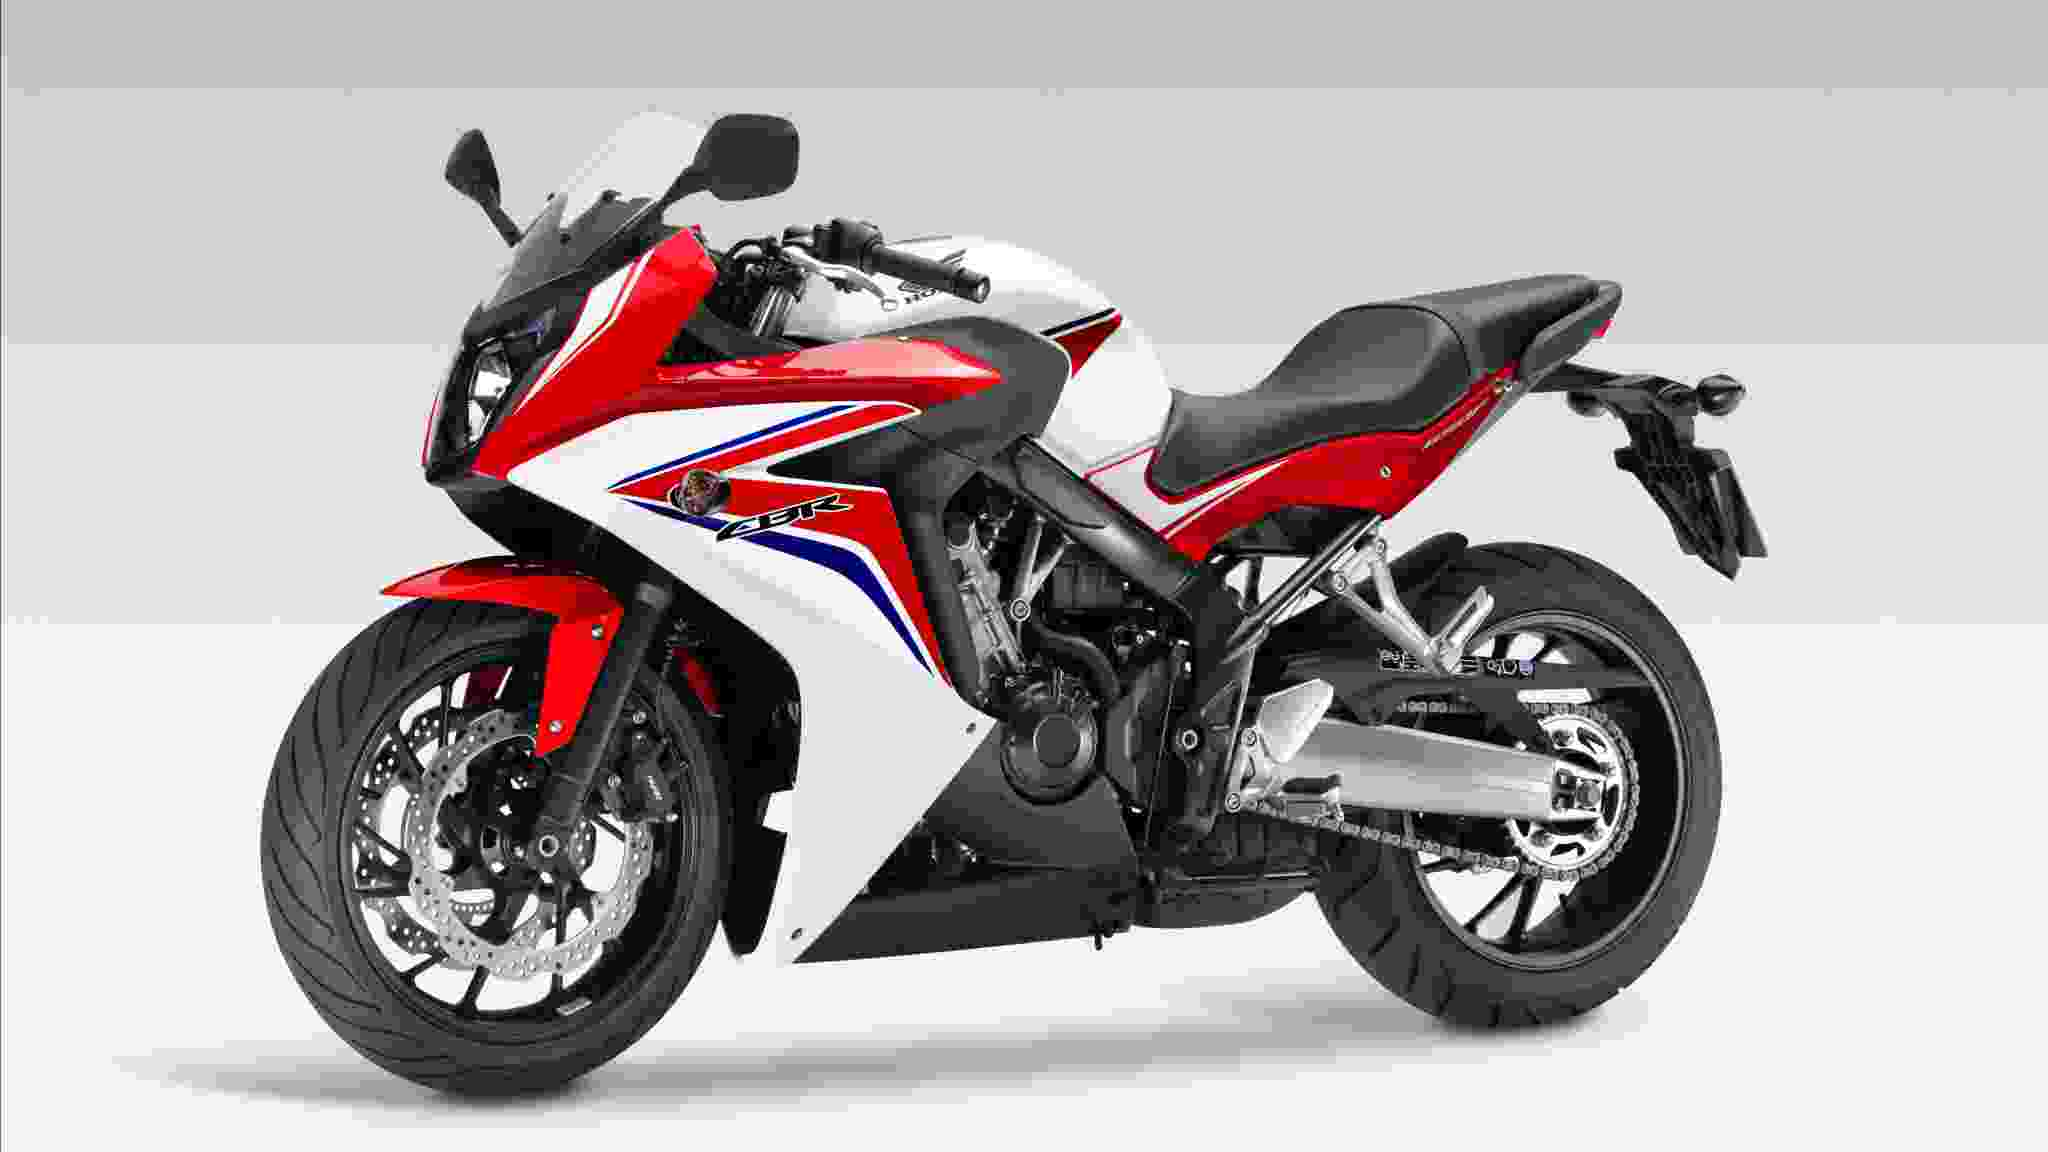 Honda Cbr650f India Price Specs Top Speed